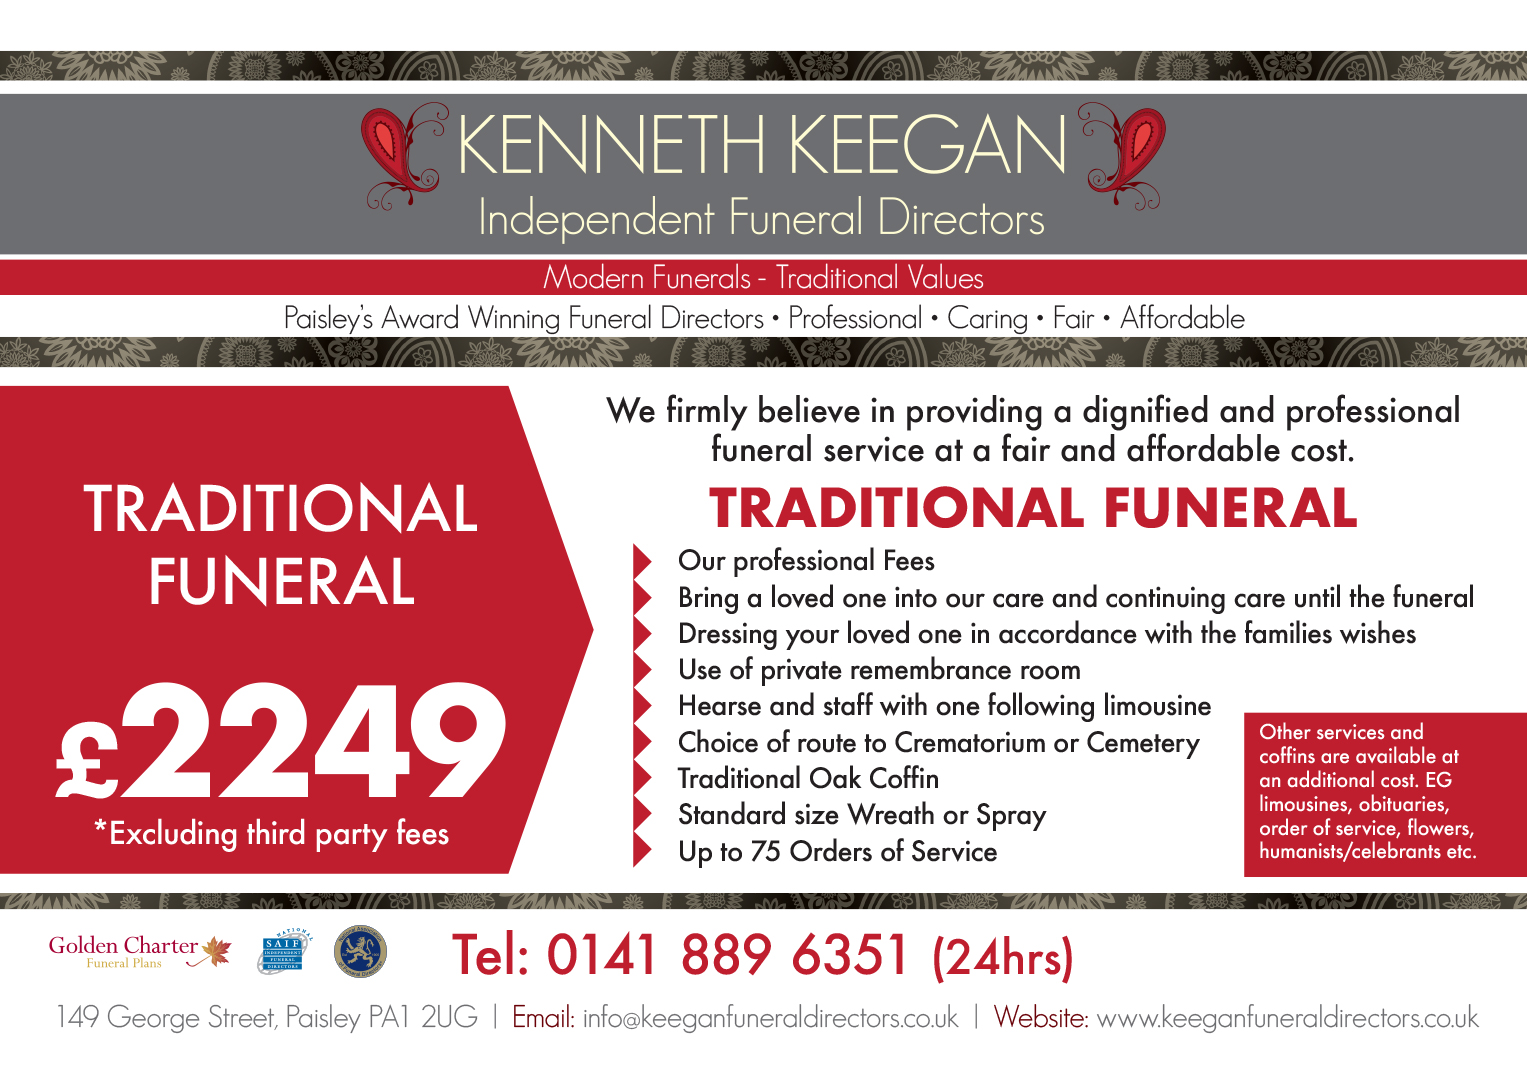 Kenneth-Keegan-Traditional-Funeral-A4L-03-05-2021